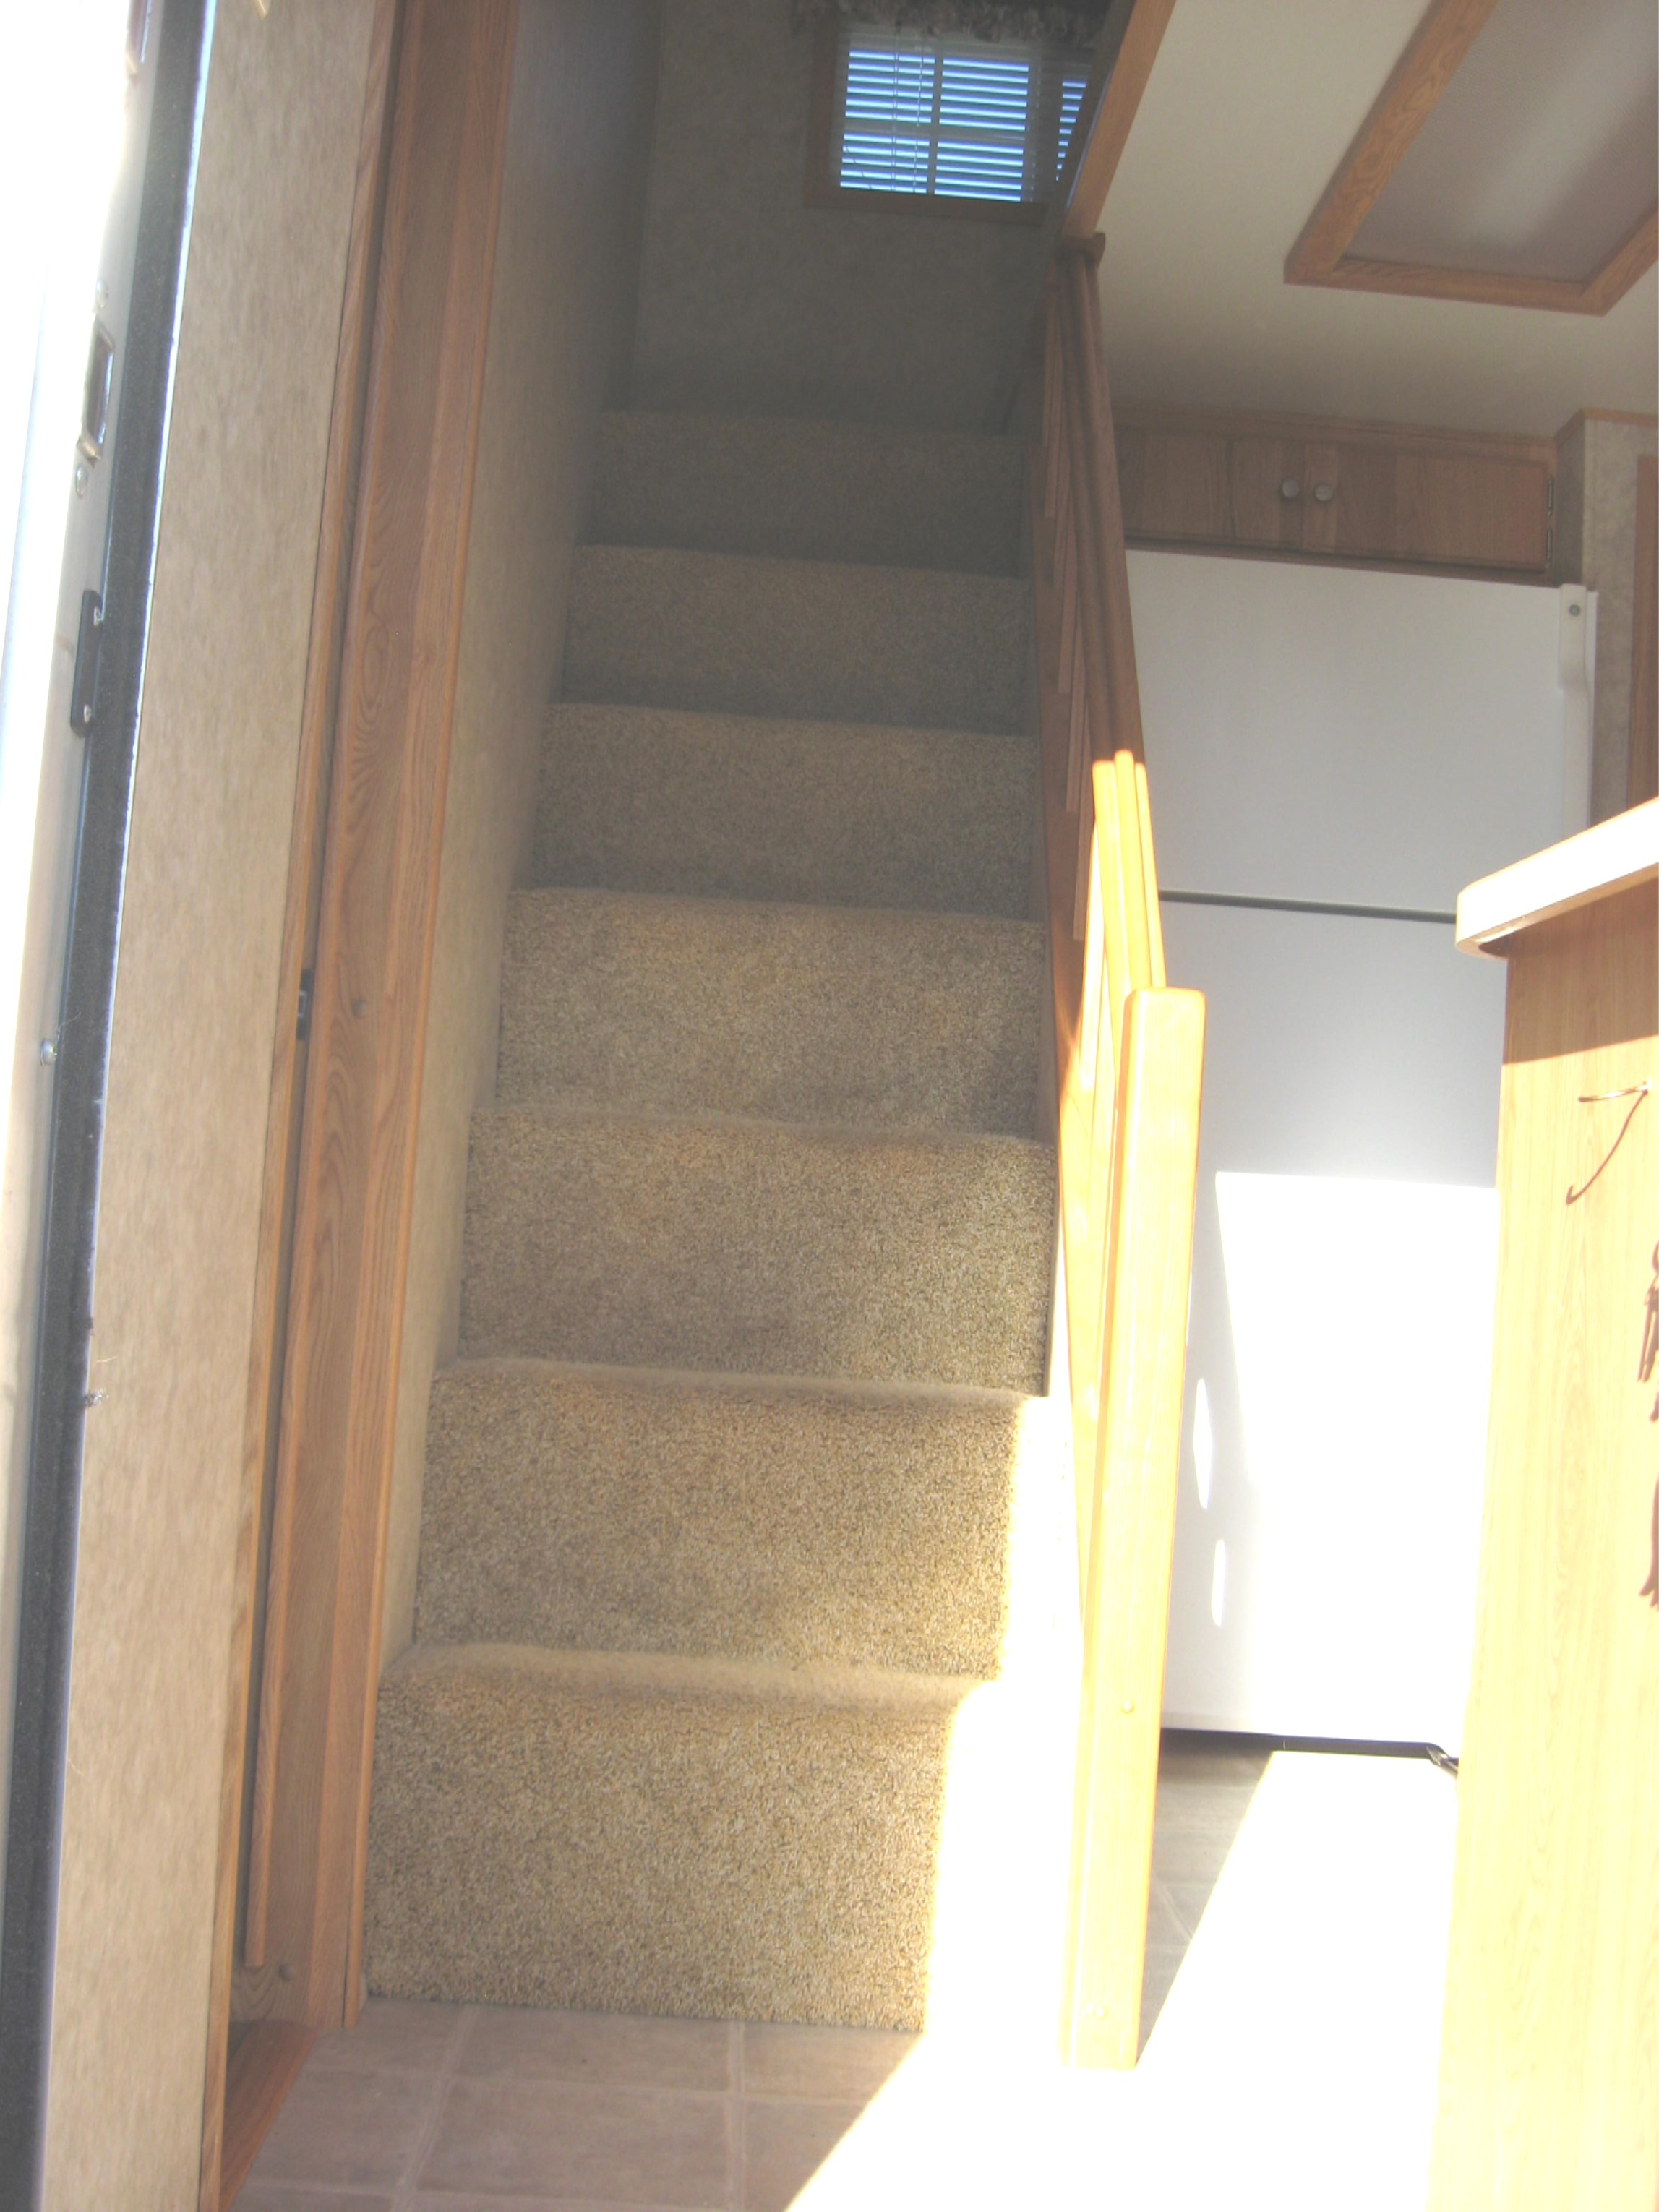 Stairs to loft 2